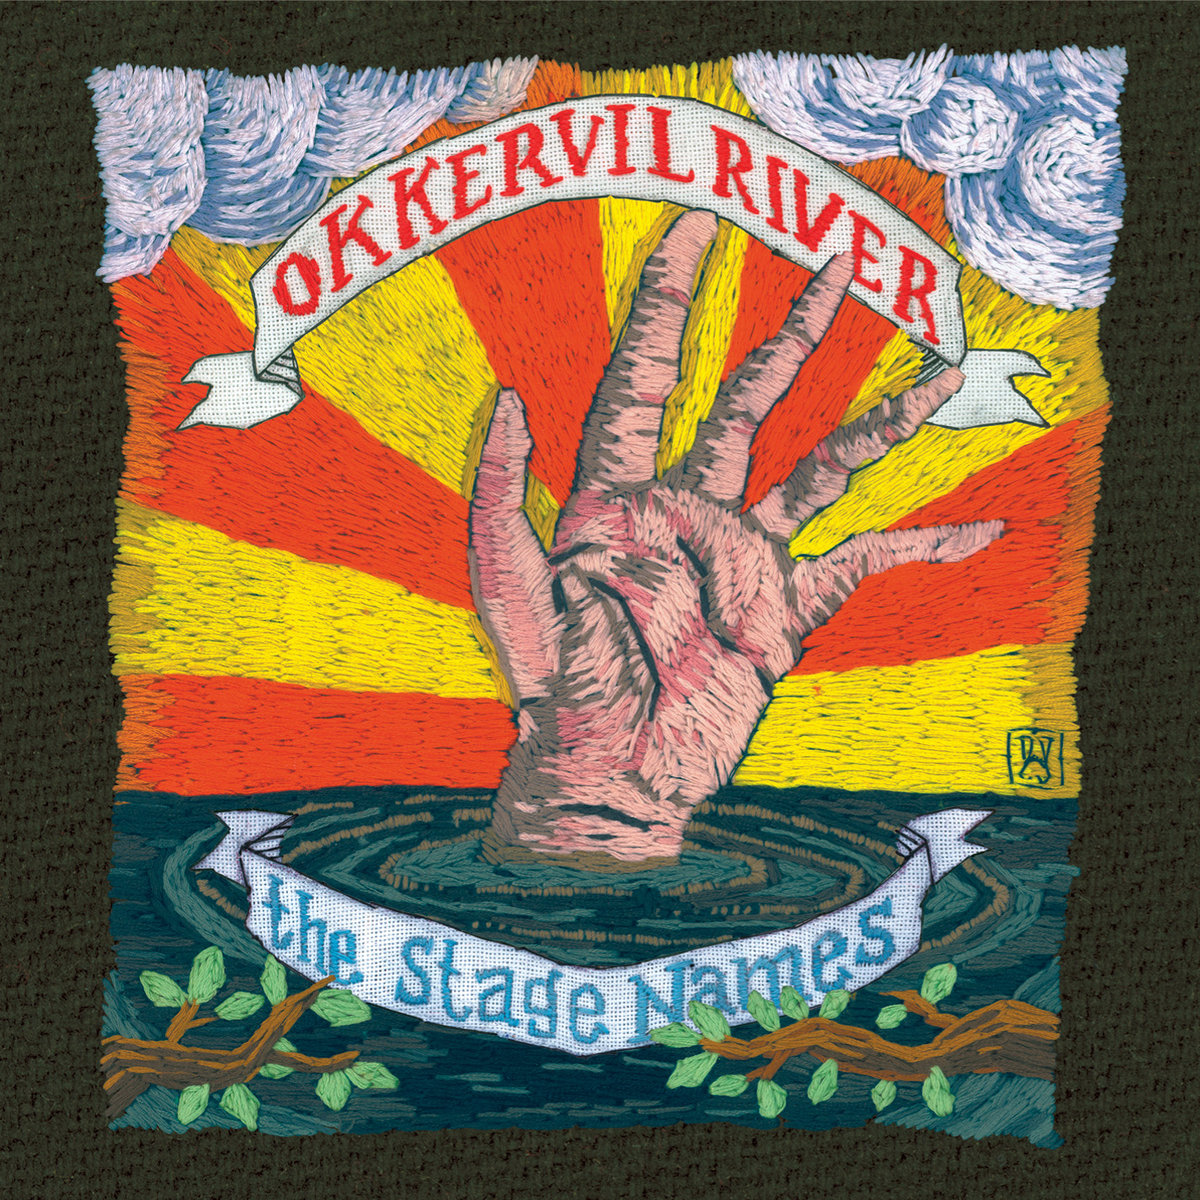 okkervil river the stage names Top 50 Songs of 2007